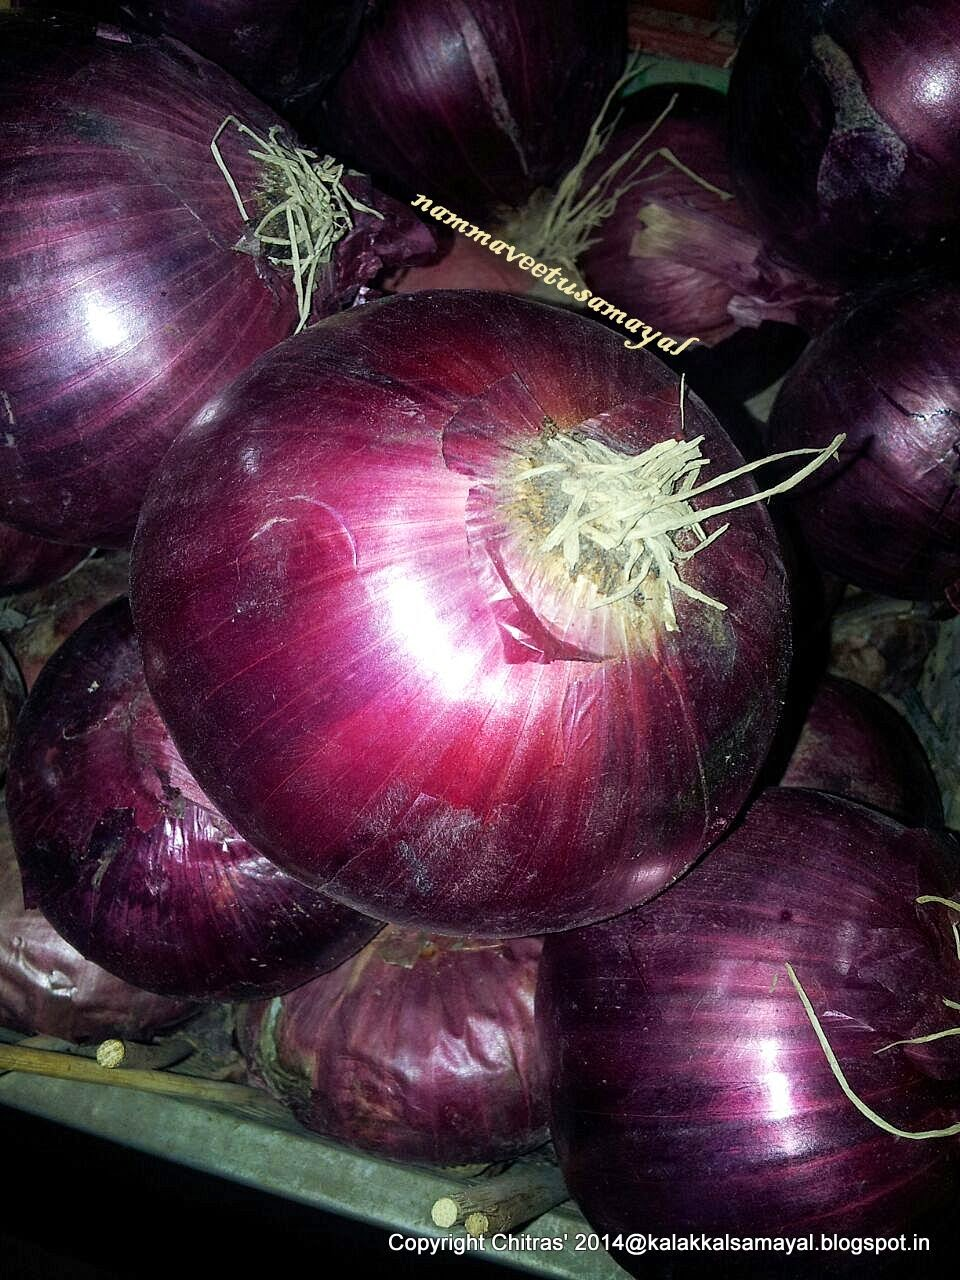 Vengayam [ Onion ]